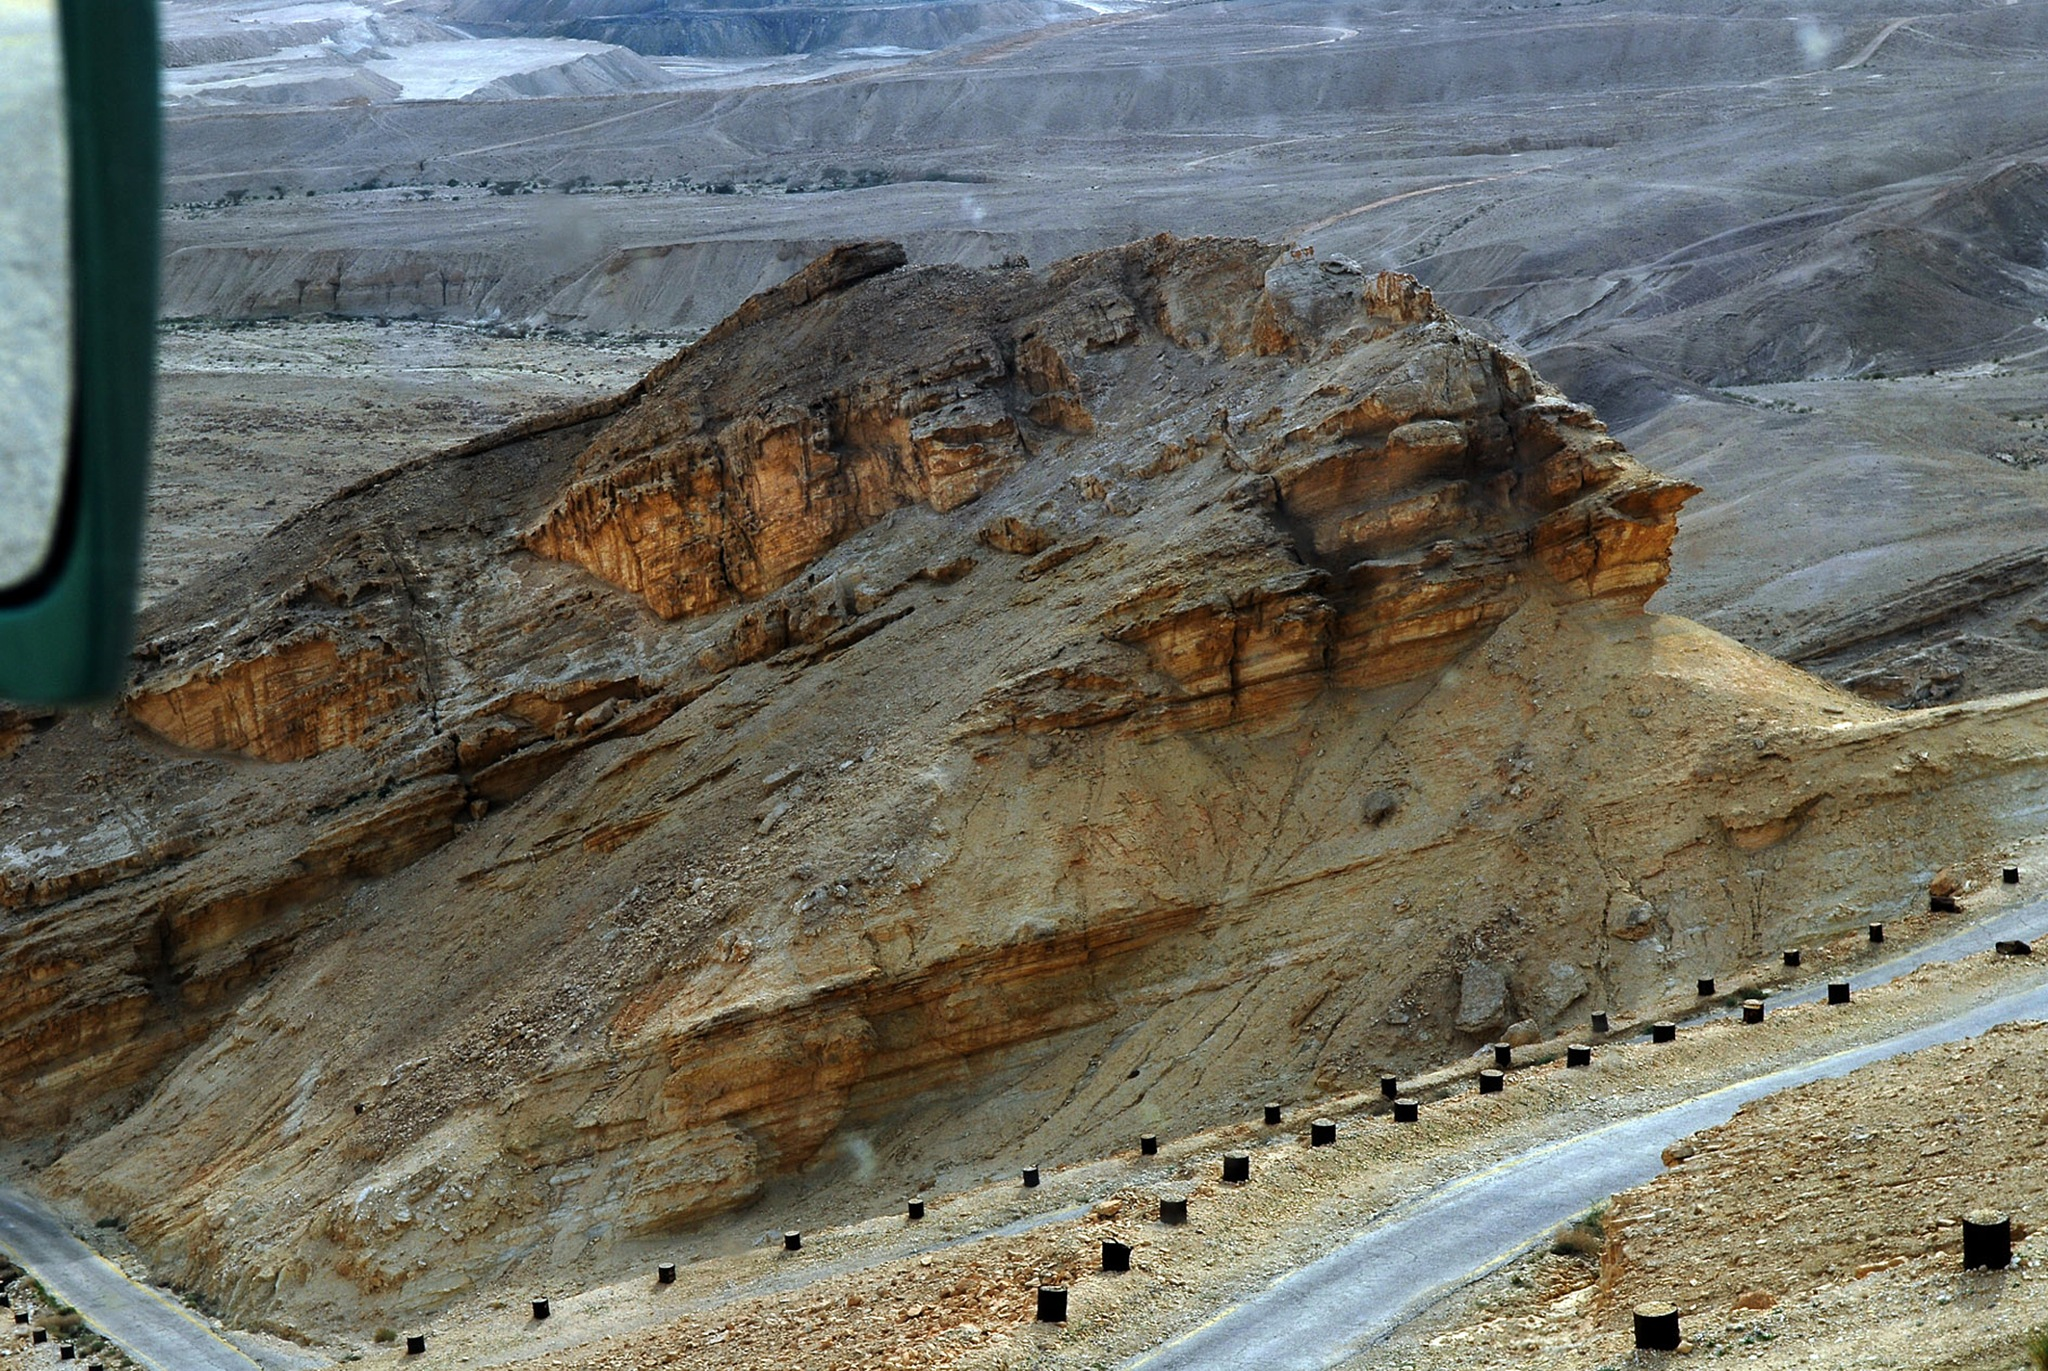 """""""Scorpion's descent"""" from the Negev to Arava by nadiakushnir"""